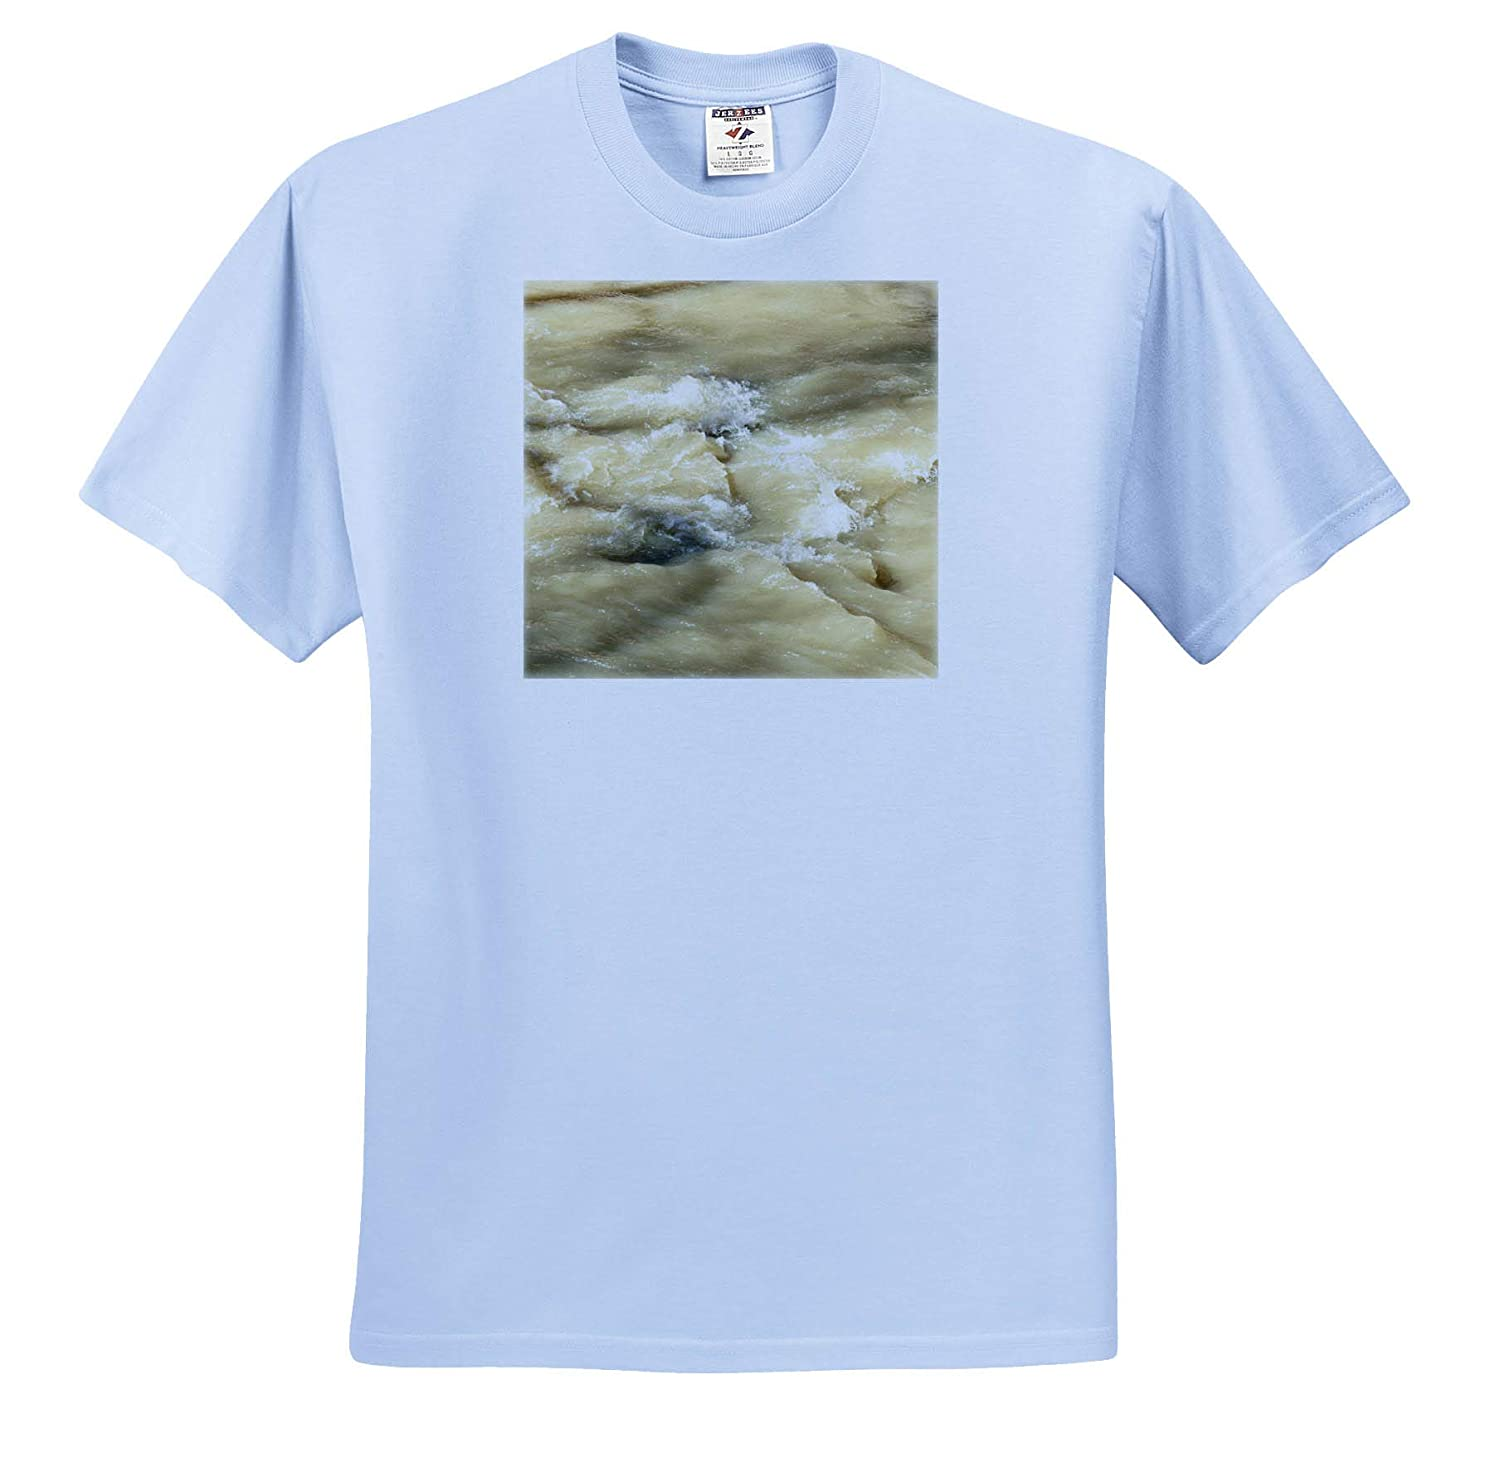 Adult T-Shirt XL The Rushing Water in The Creek in a Muddy Color 3dRose Jos Fauxtographee- Stream ts/_318883